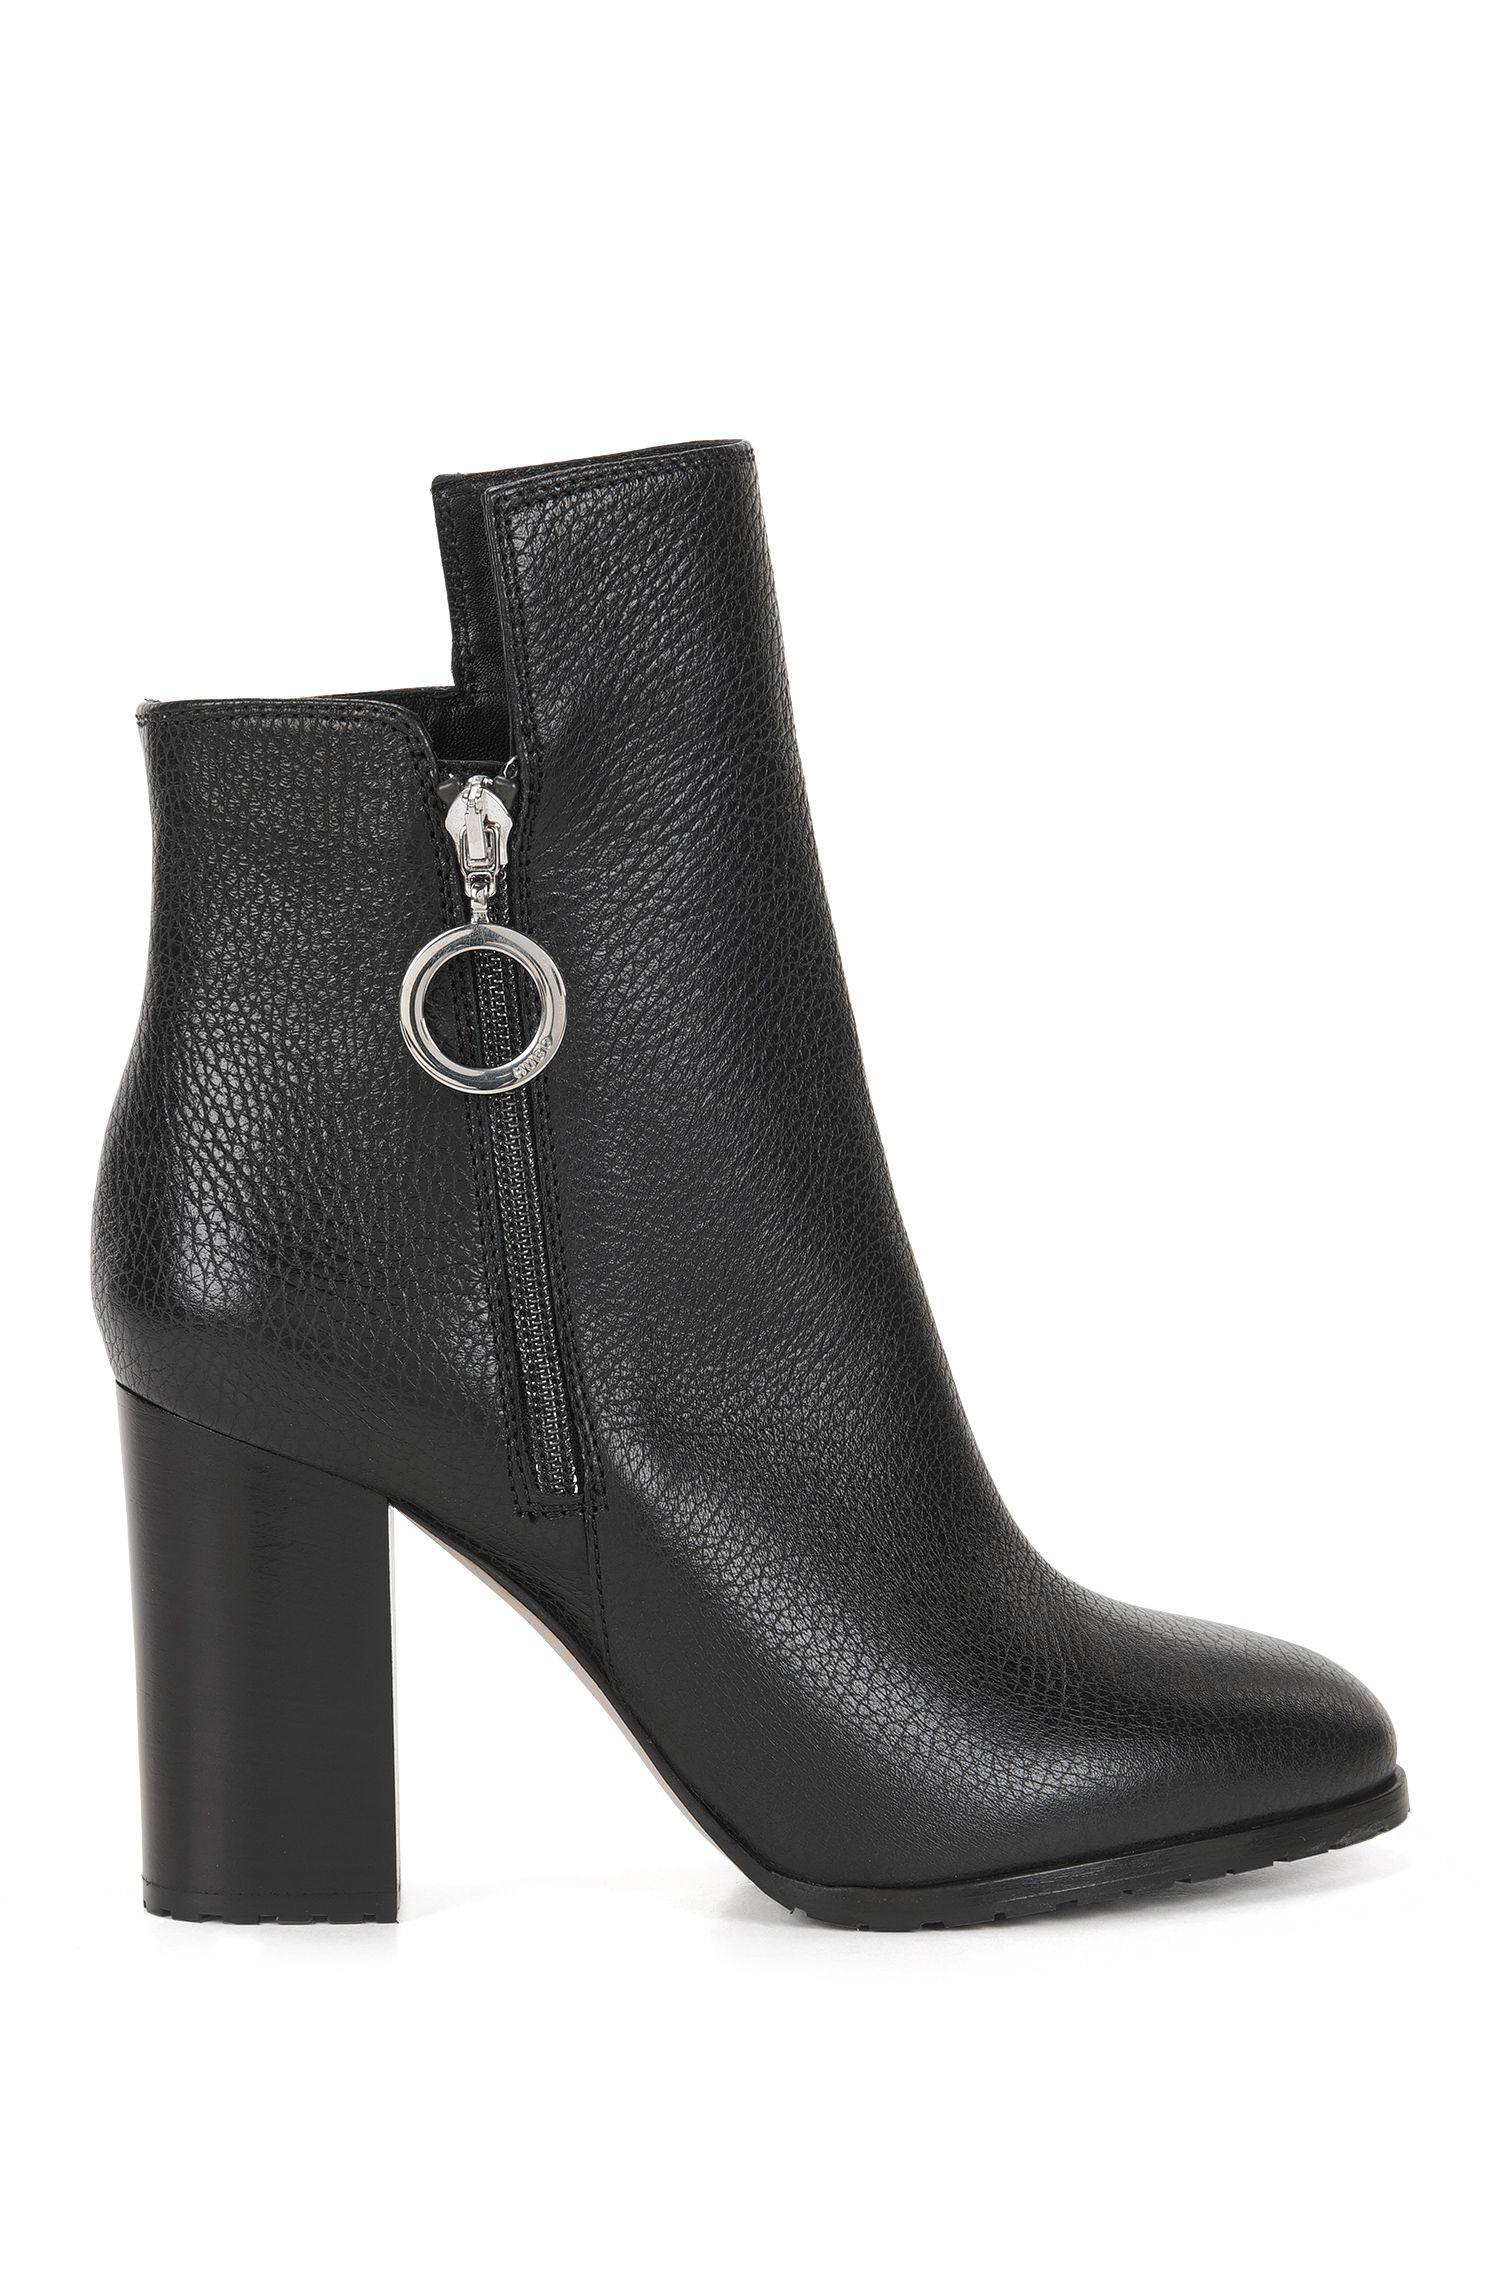 Ring-detailed ankle boots in Italian leather